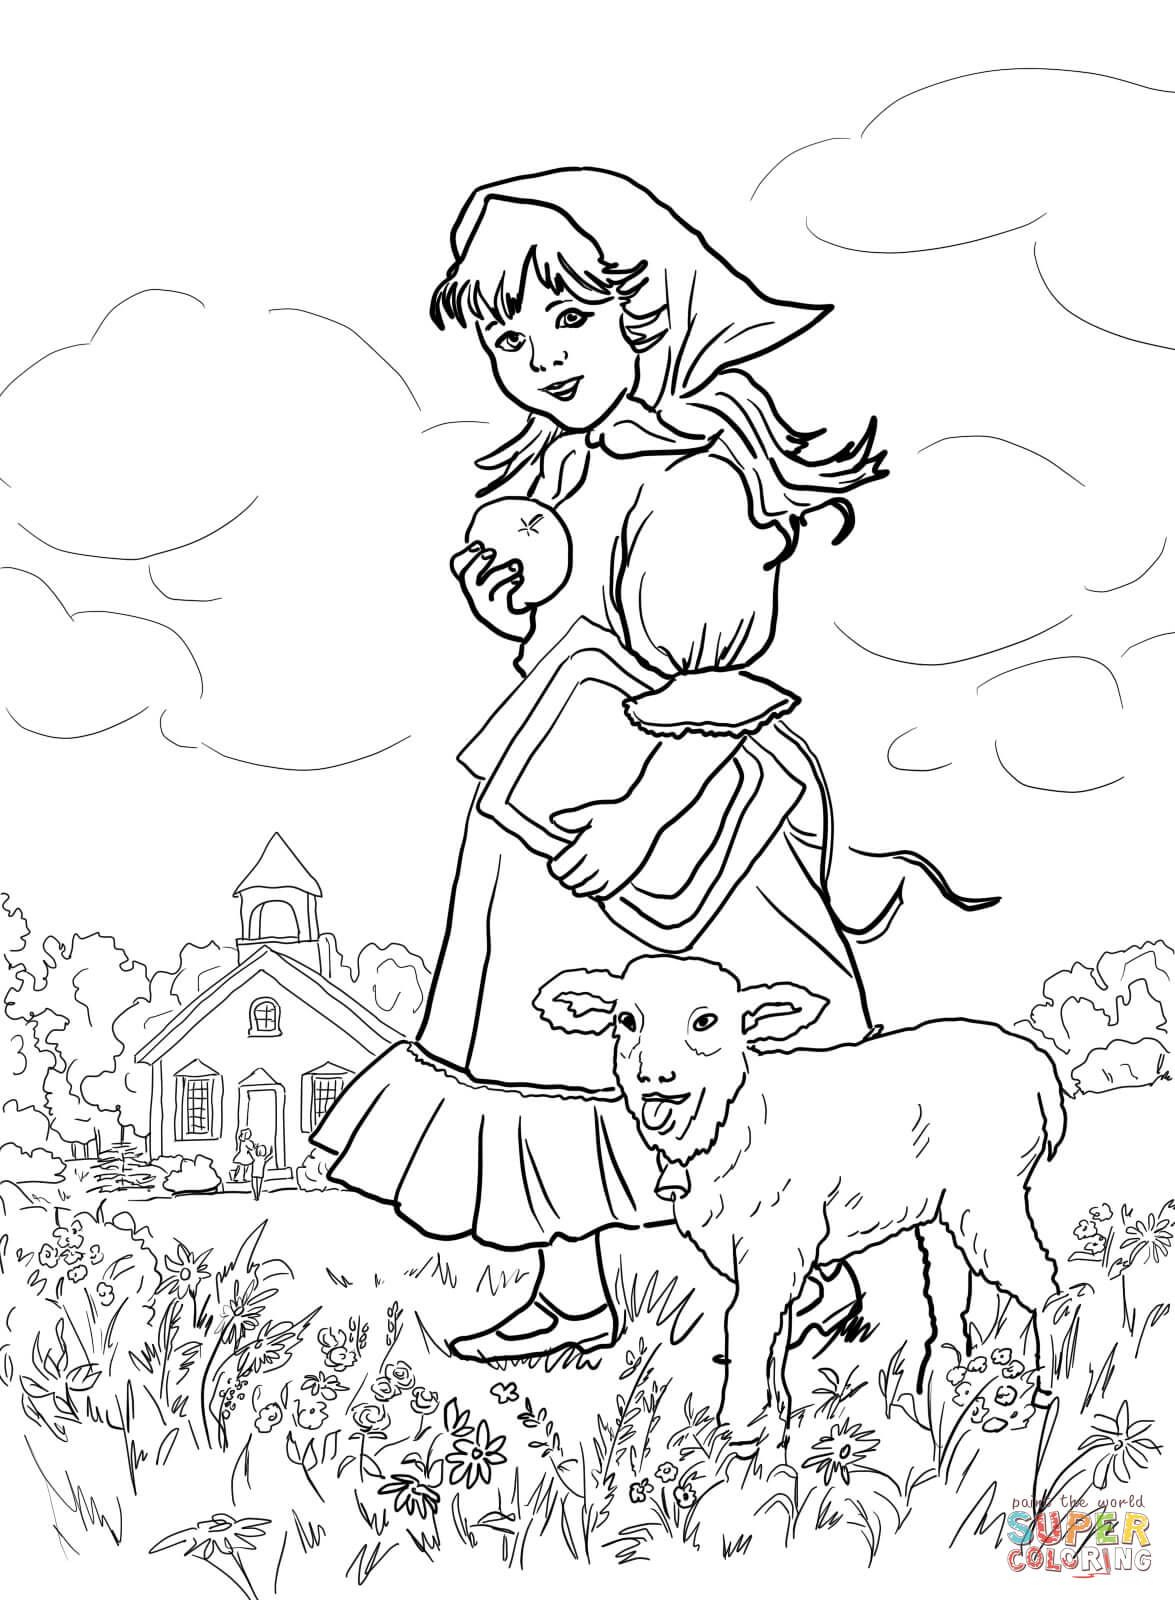 Mary Had A Little Lamb | Coloring Fairy Tale, Nursery Rhymes And - Free Printable Mother Goose Nursery Rhymes